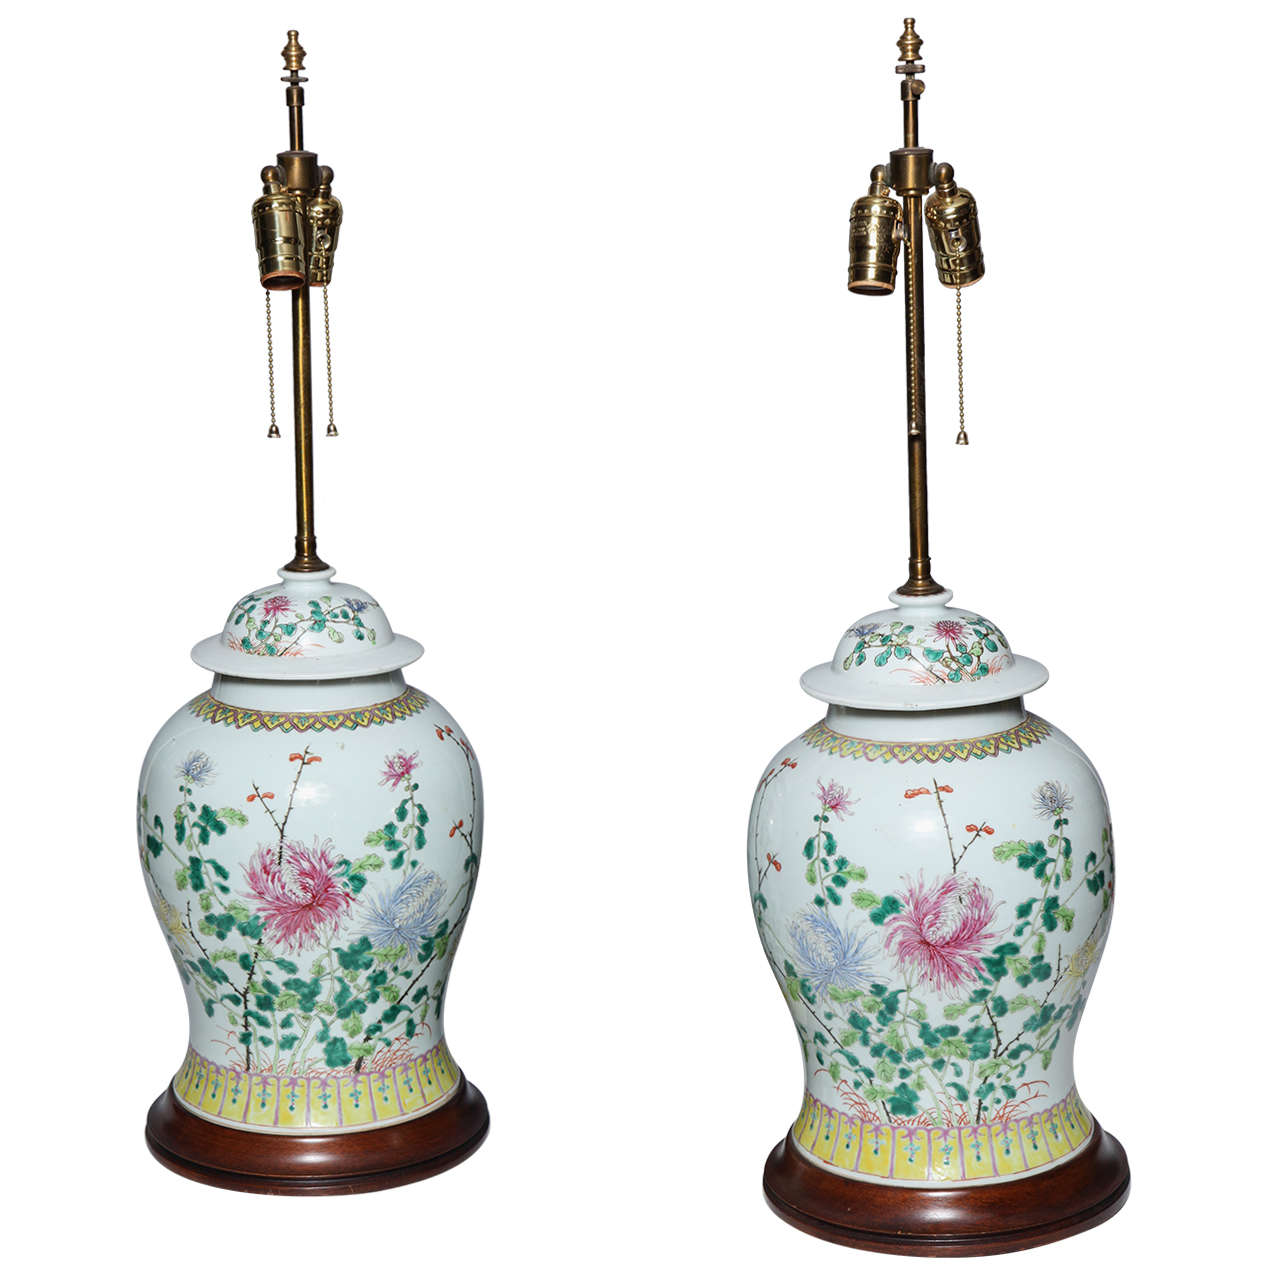 Pair of 19th century chinese porcelain ginger jars converted into pair of 19th century chinese porcelain ginger jars converted into table lamps 1 geotapseo Gallery